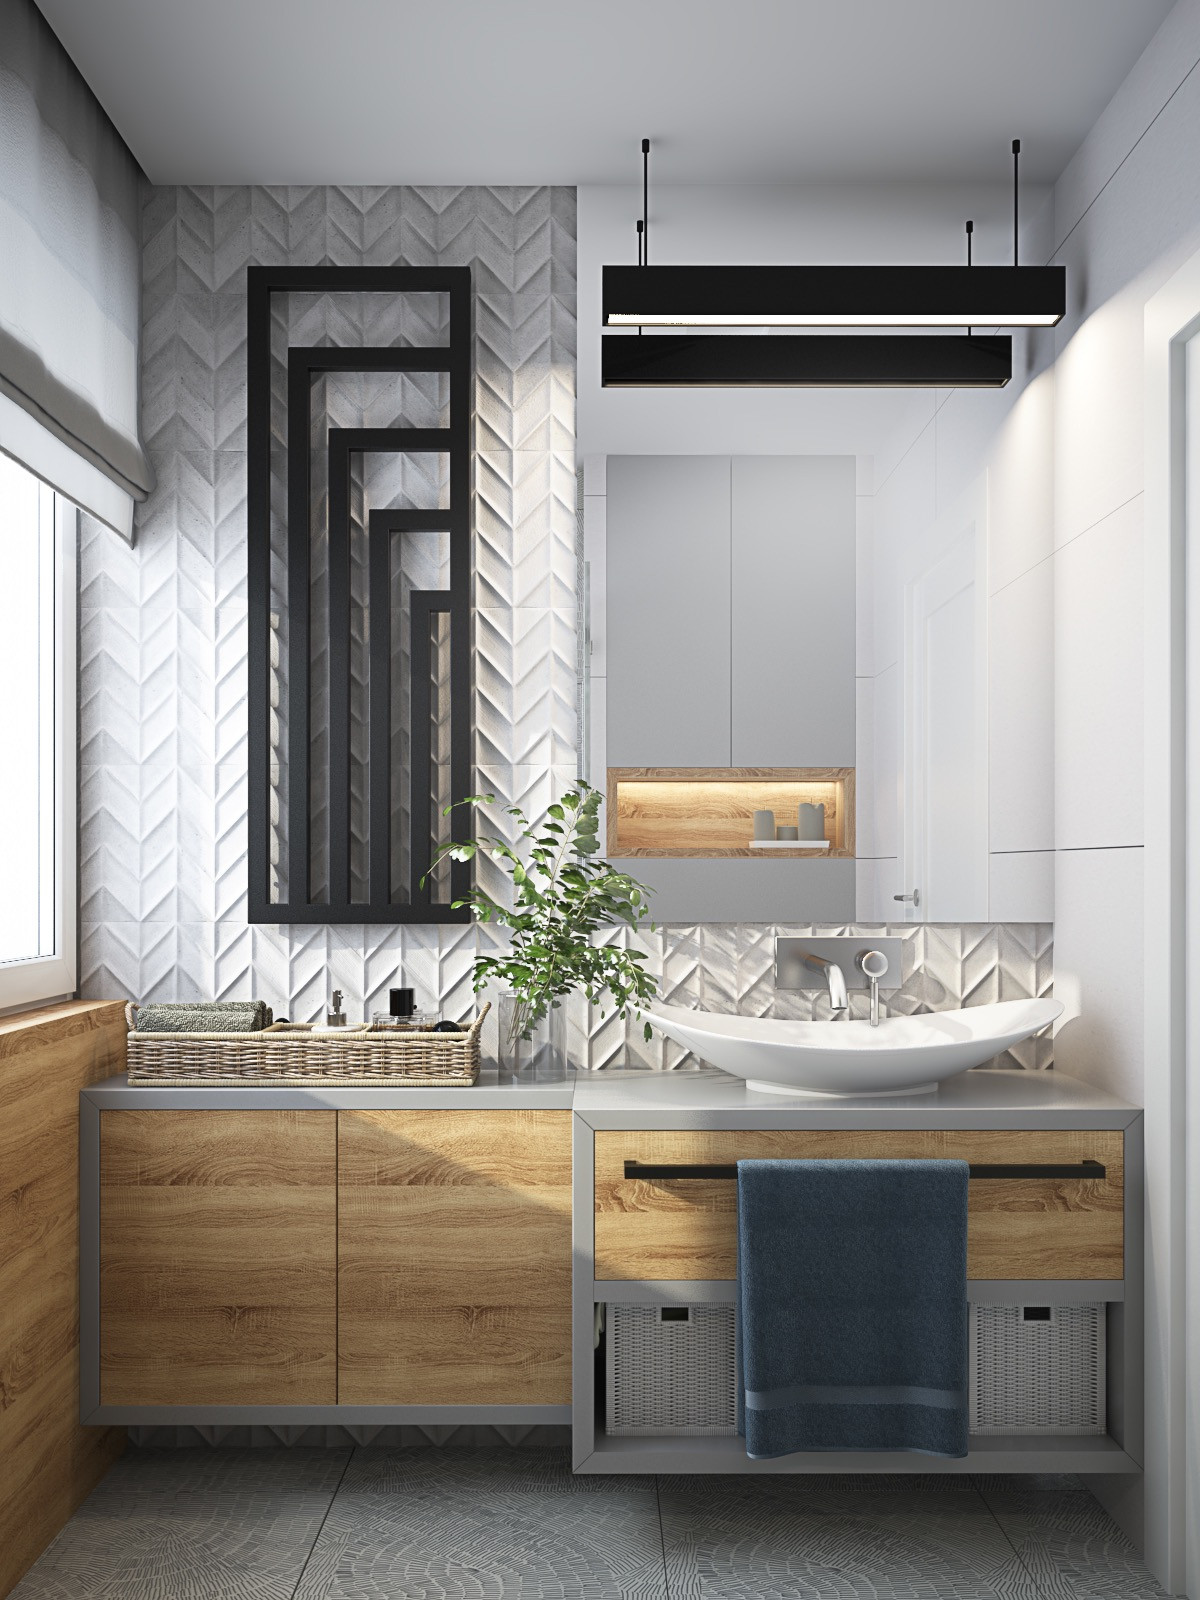 Best ideas about Modern Bathroom Vanities . Save or Pin 40 Modern Bathroom Vanities That Overflow With Style Now.